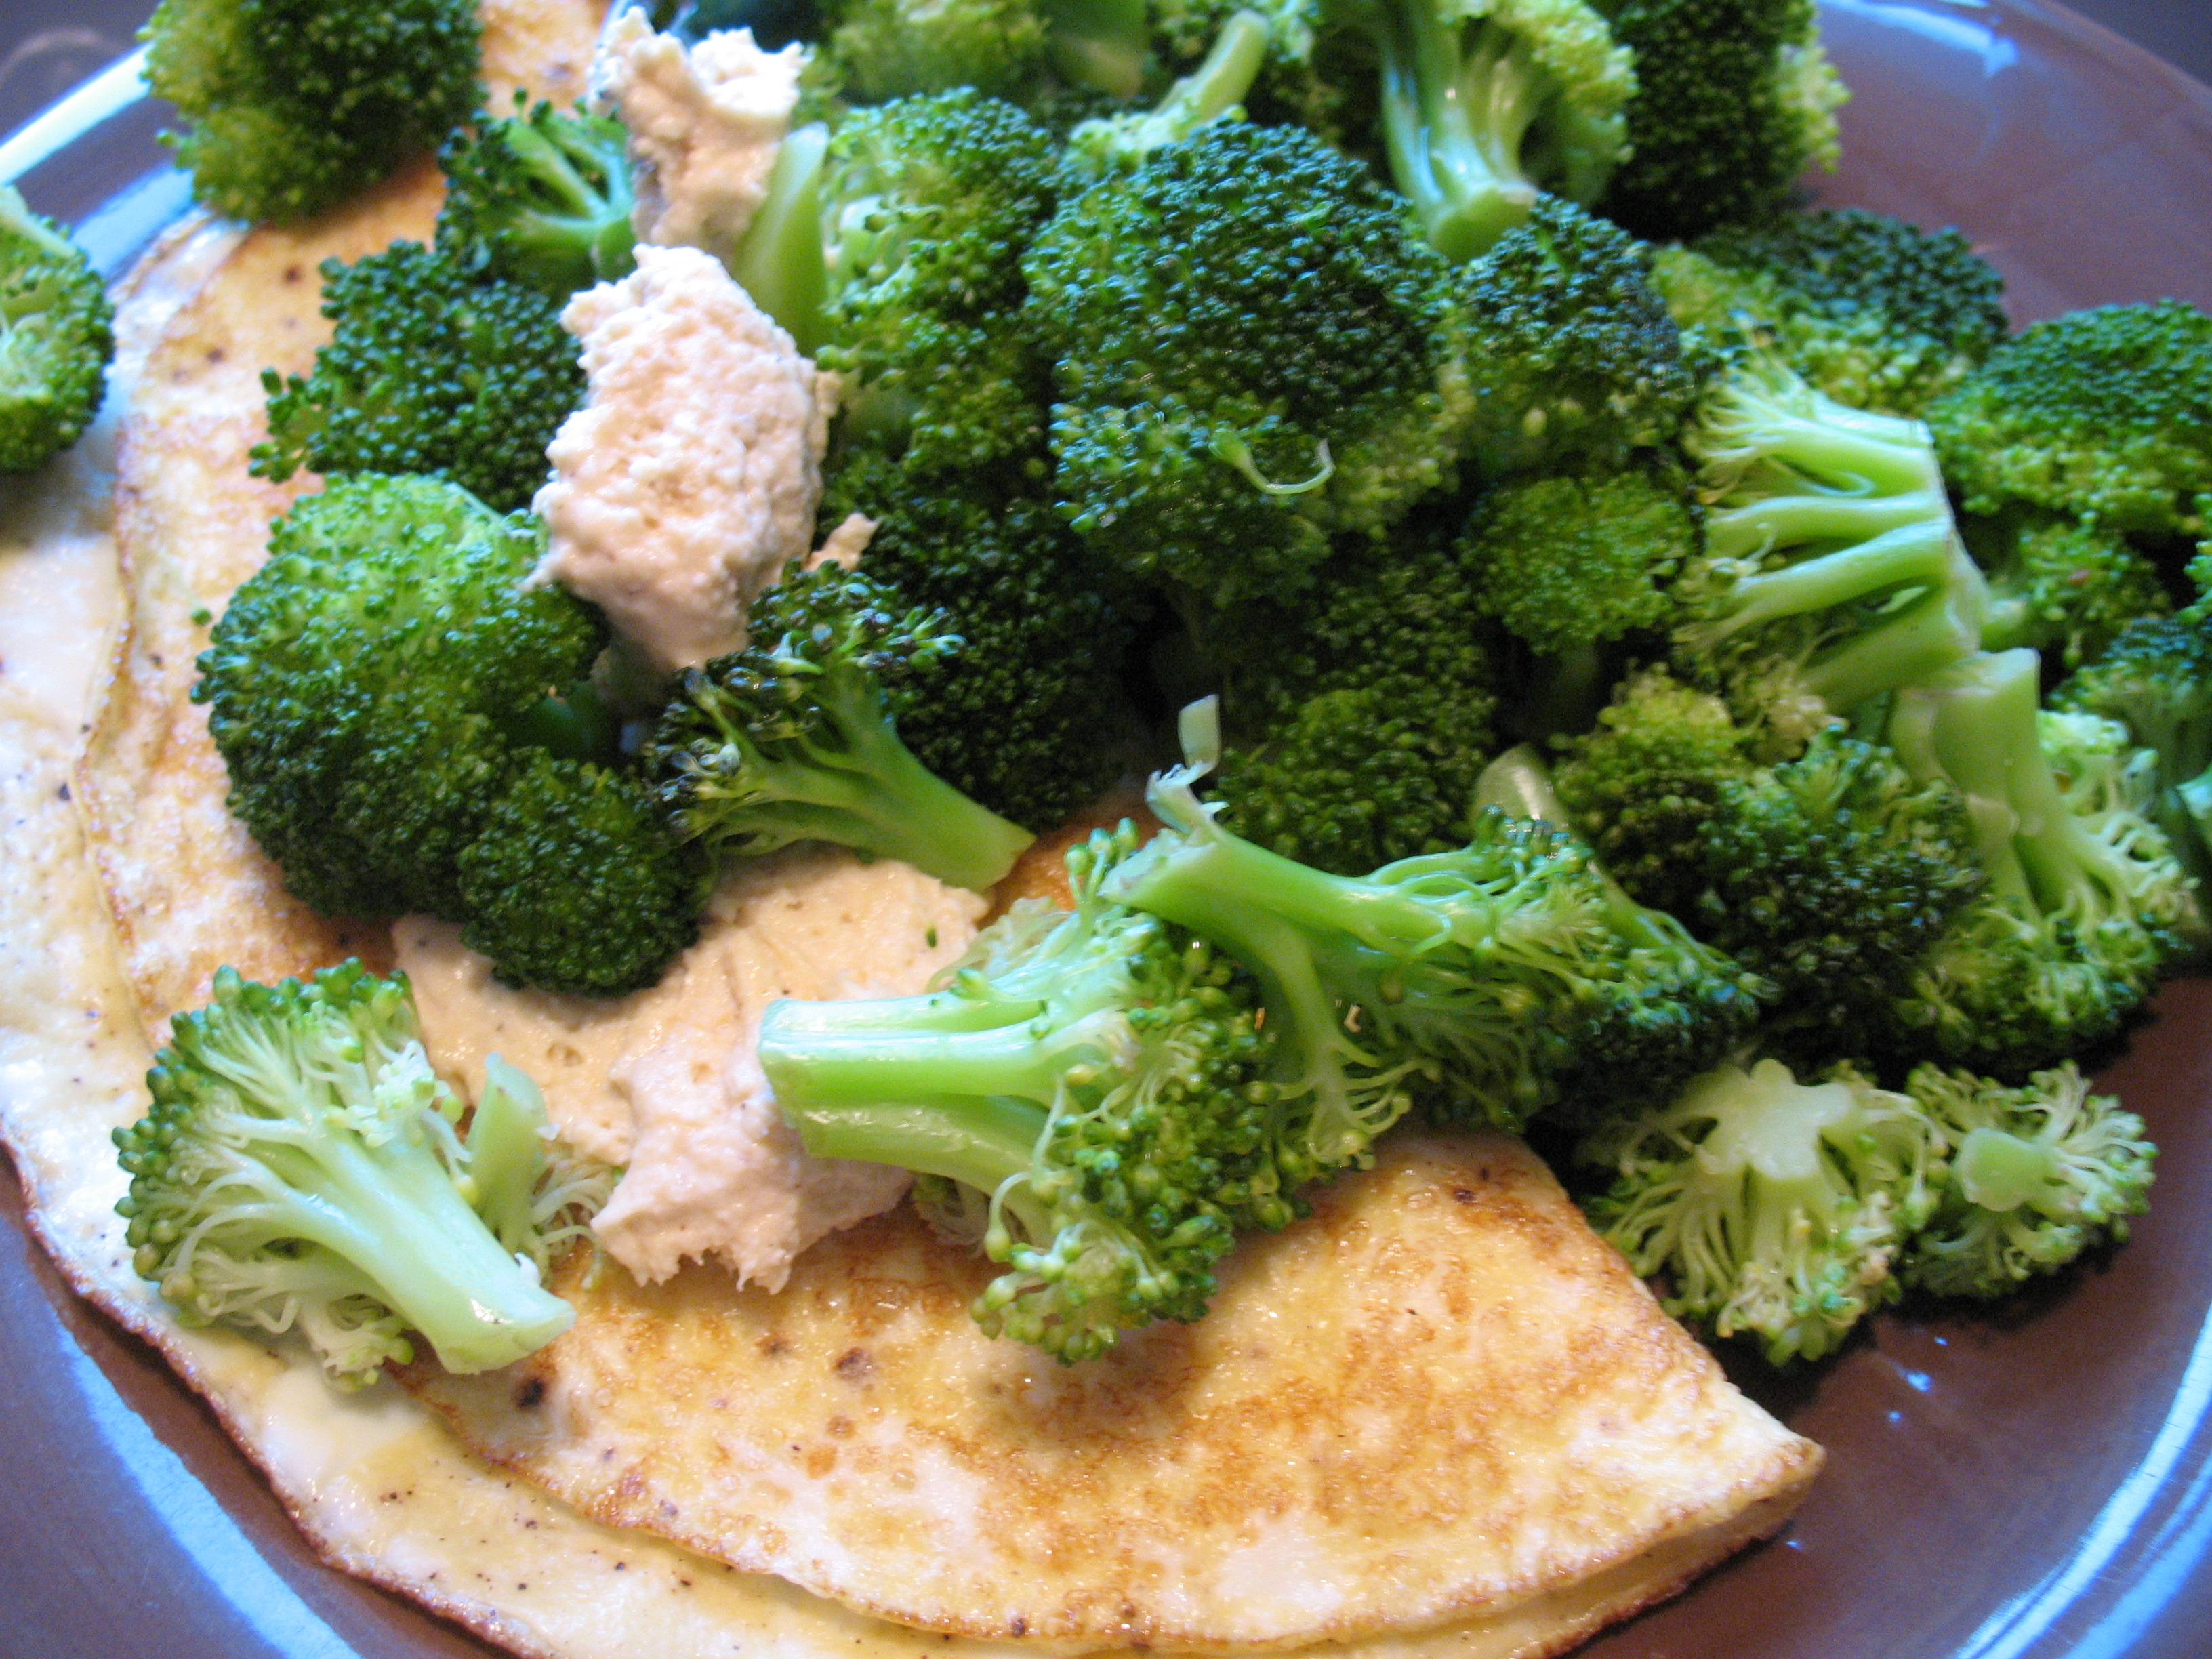 An omelet (1 whole egg + 3 whites) with steamed broccoli and hummus.